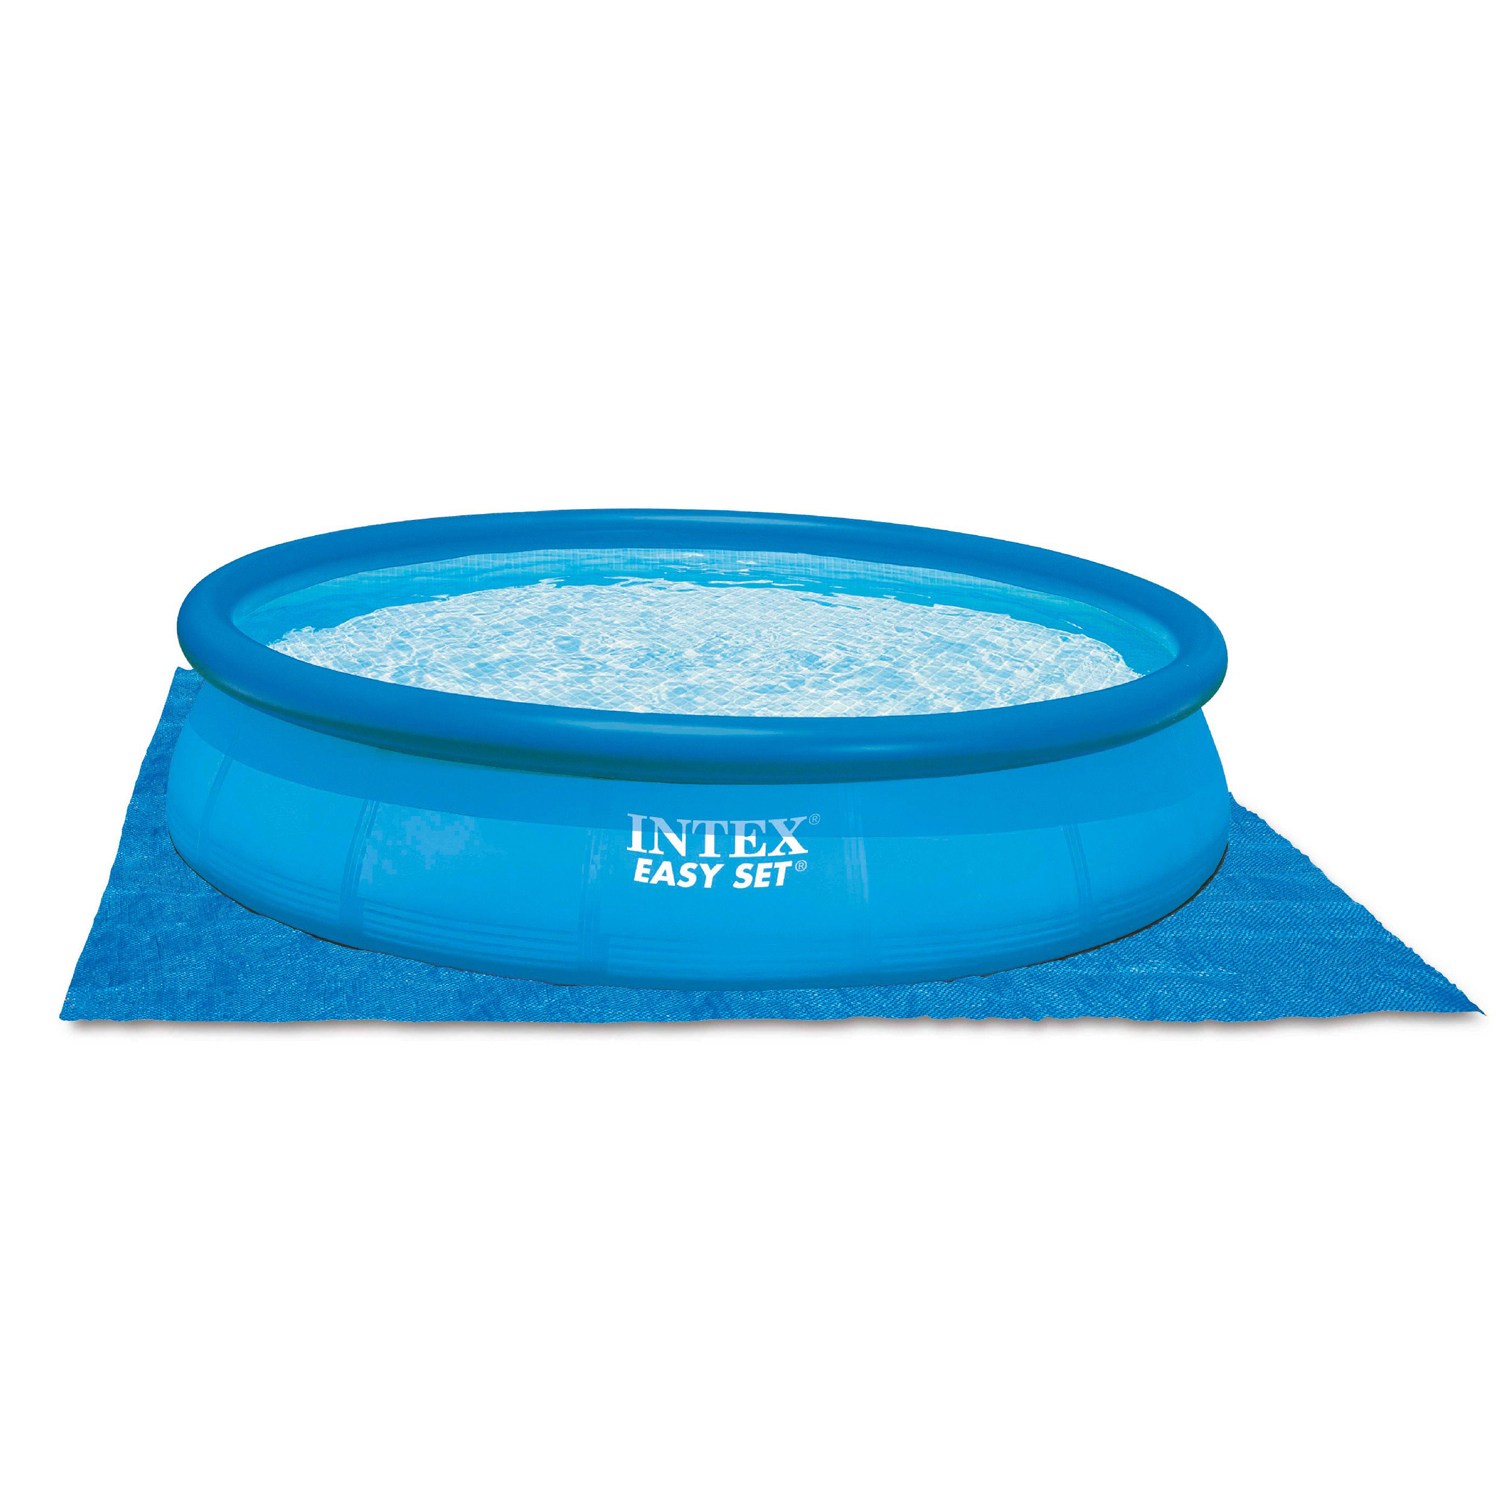 Intex Bodenschutzplane für Swimming Pools 128048